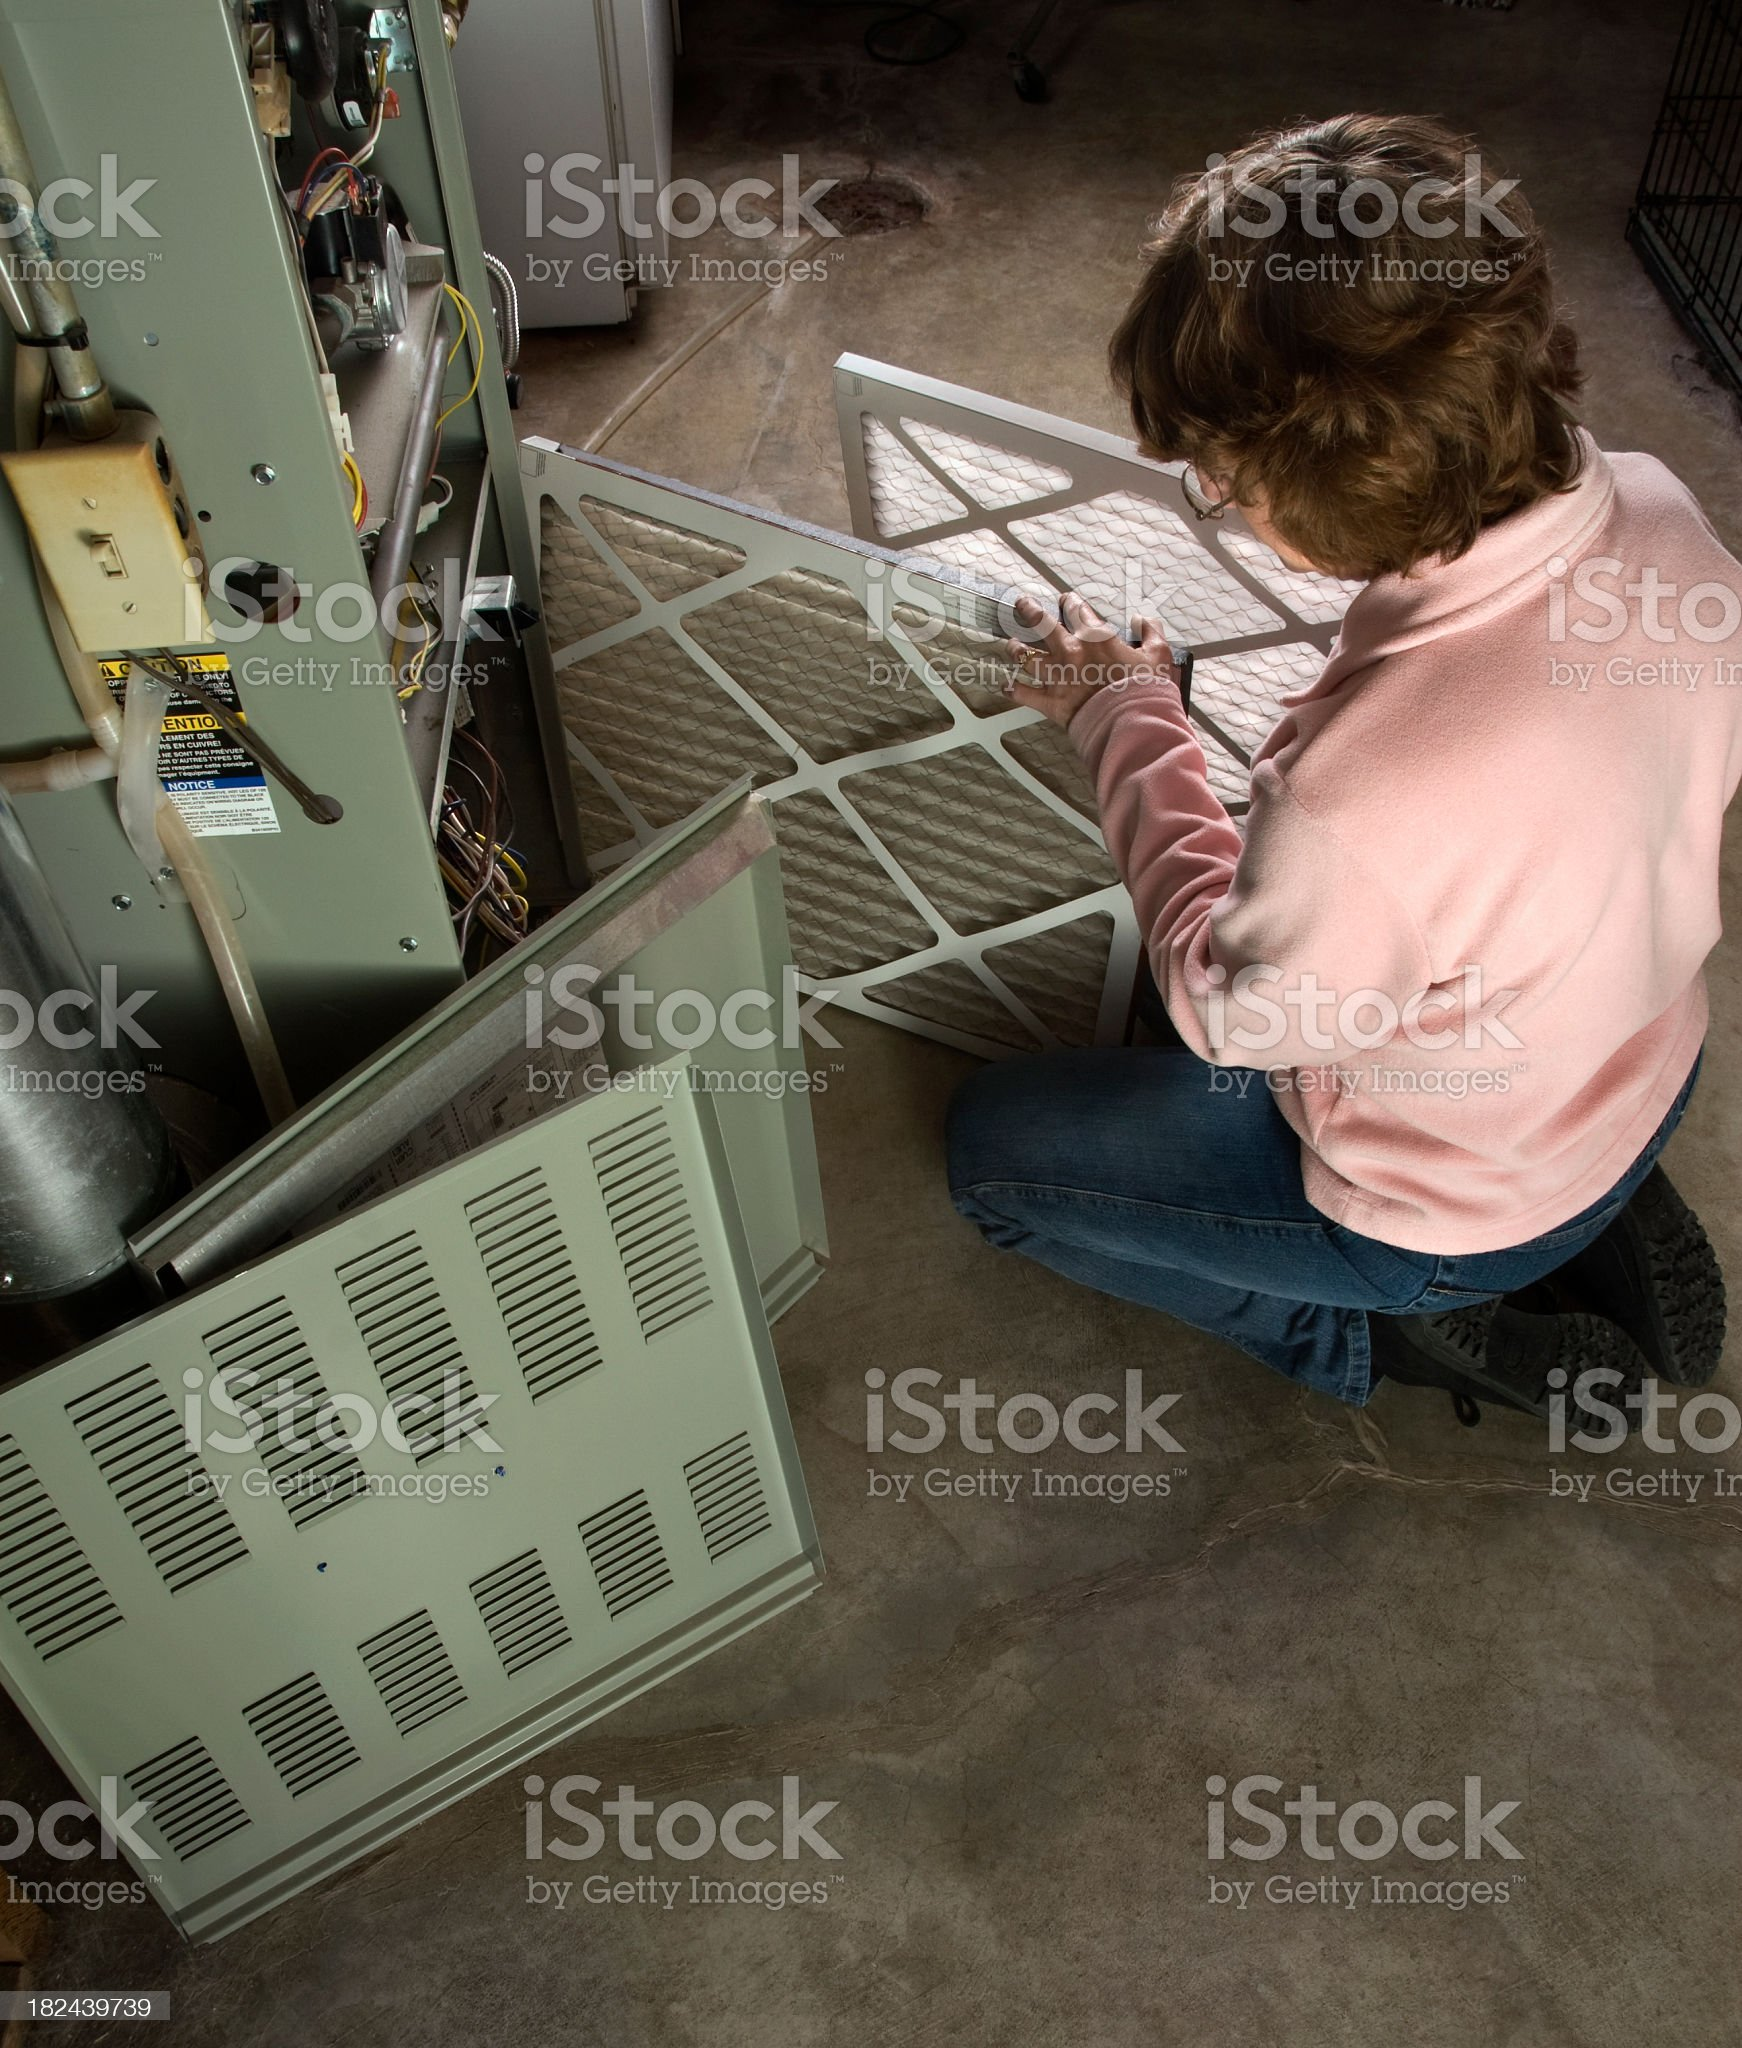 Comparing Dirty and New Furnace Air Filters royalty-free stock photo